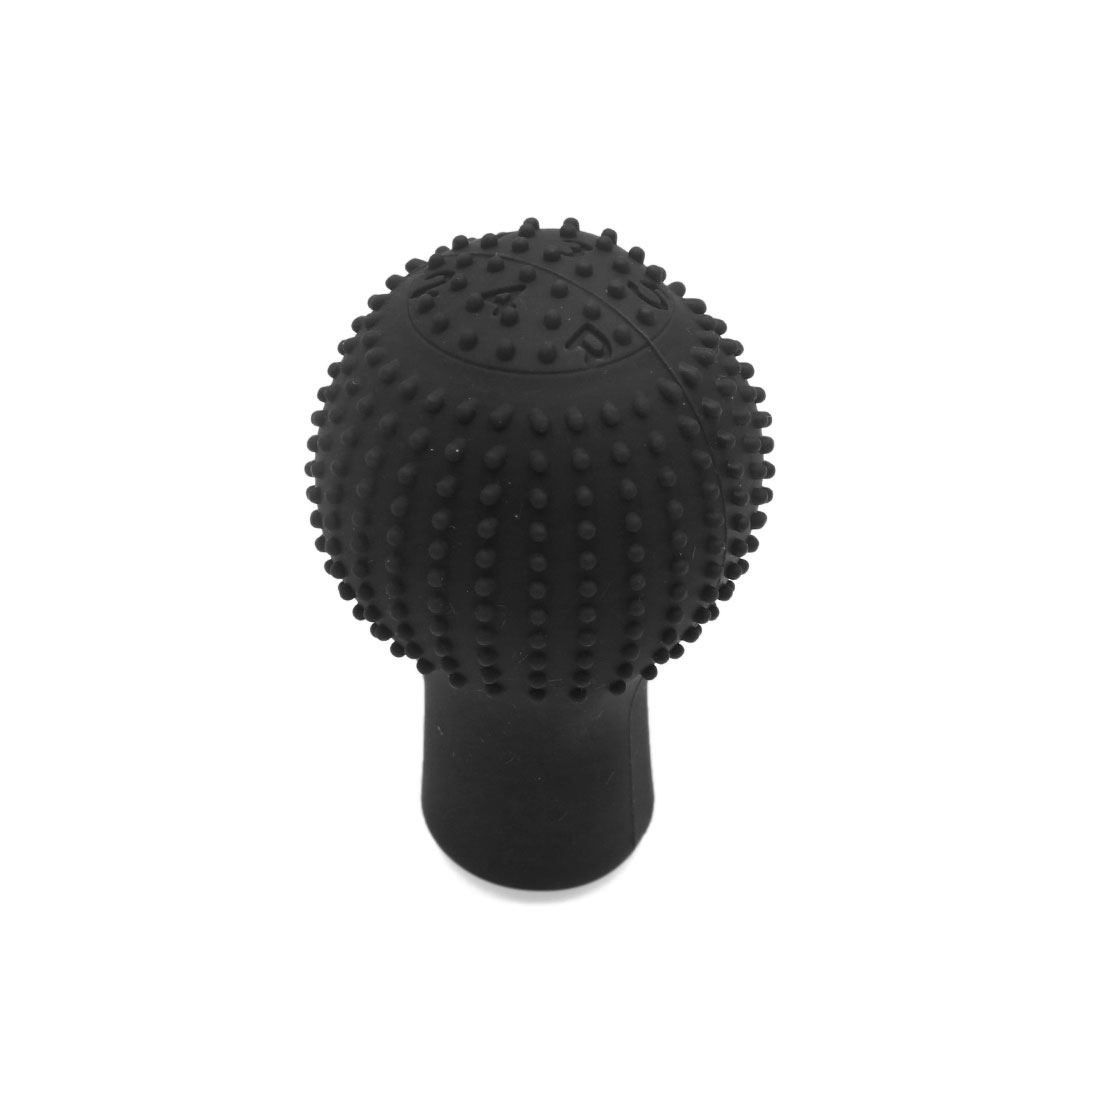 Black Rubber Car Round Hand Brake Head Cover Gear Shift Knob Cushion Protector - image 3 of 3